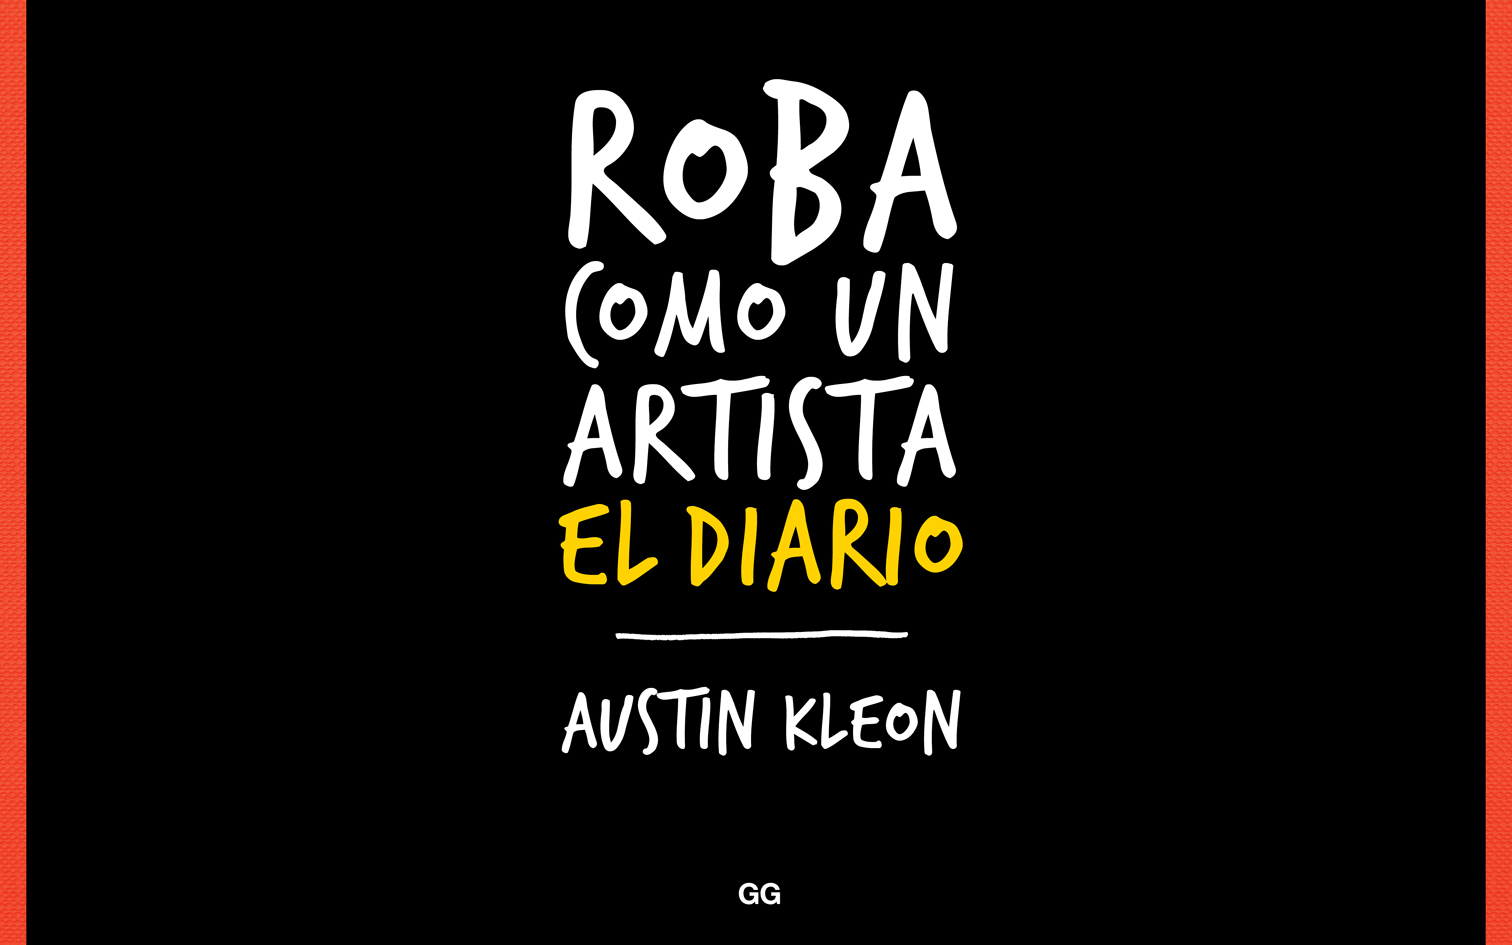 1-gg_kleon_robacomounartista_04_17-copy